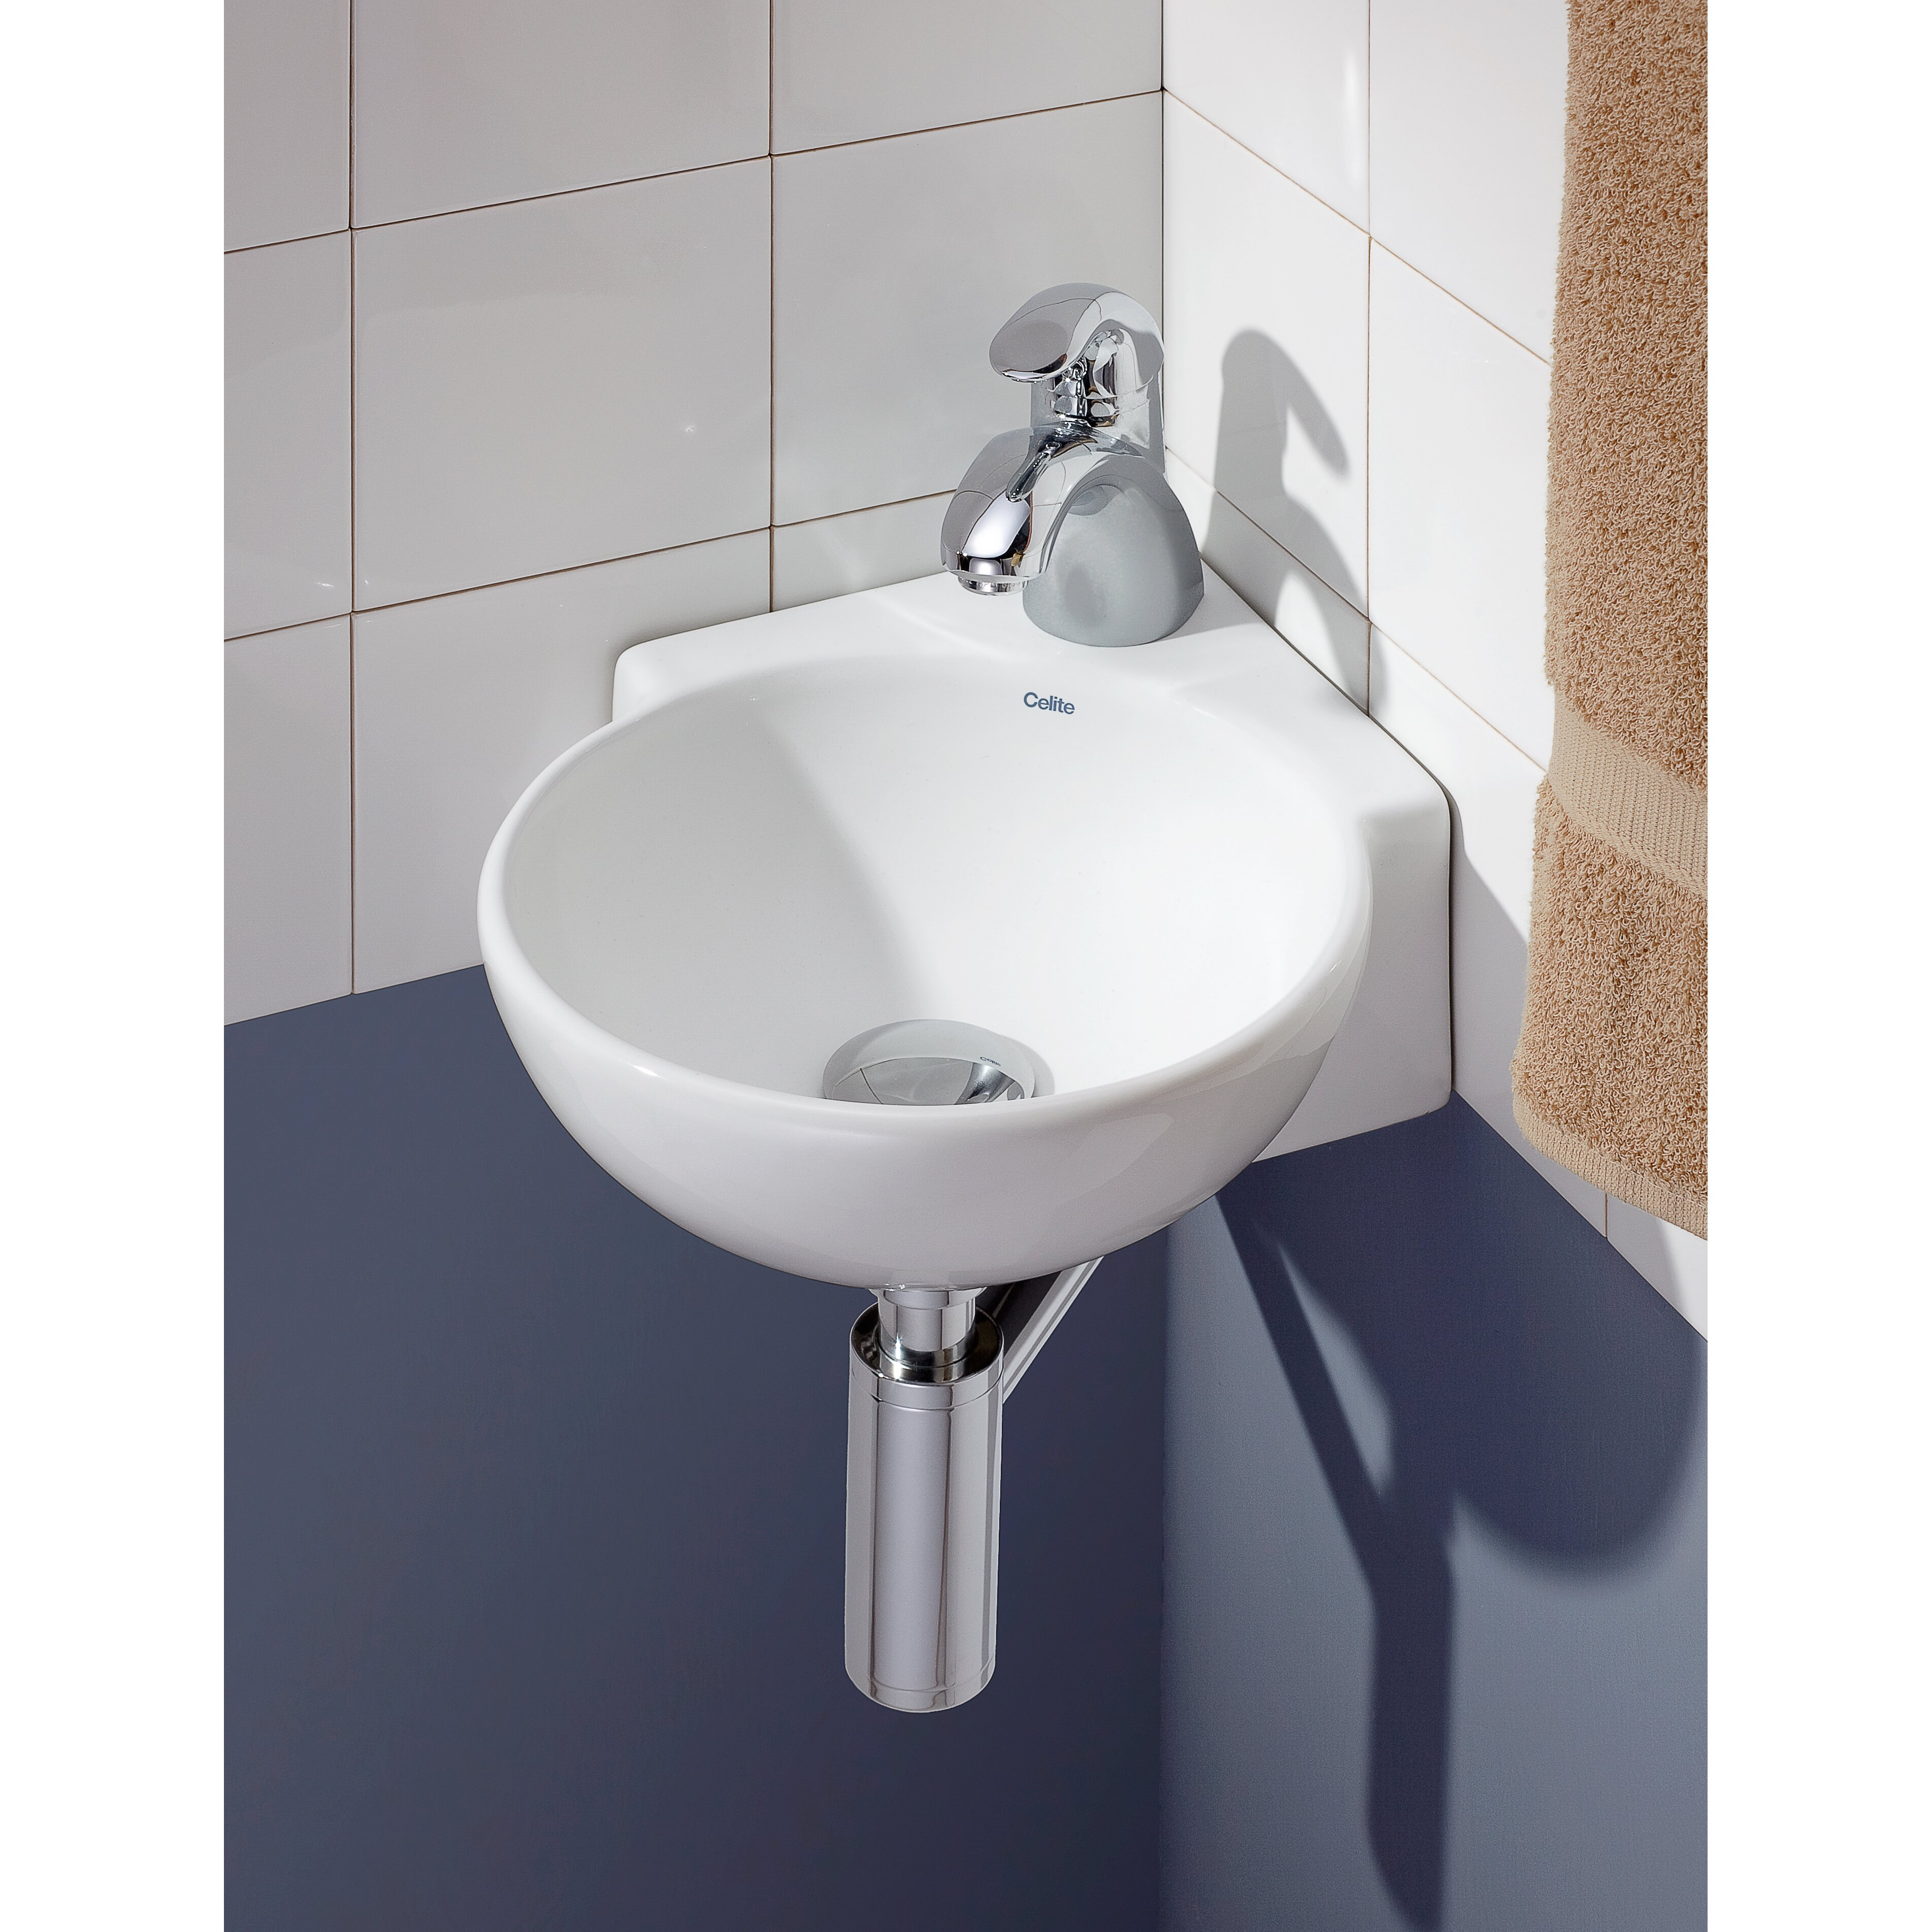 Cheviotproducts 12 75 Quot Corner Wall Mount Vessel Sink